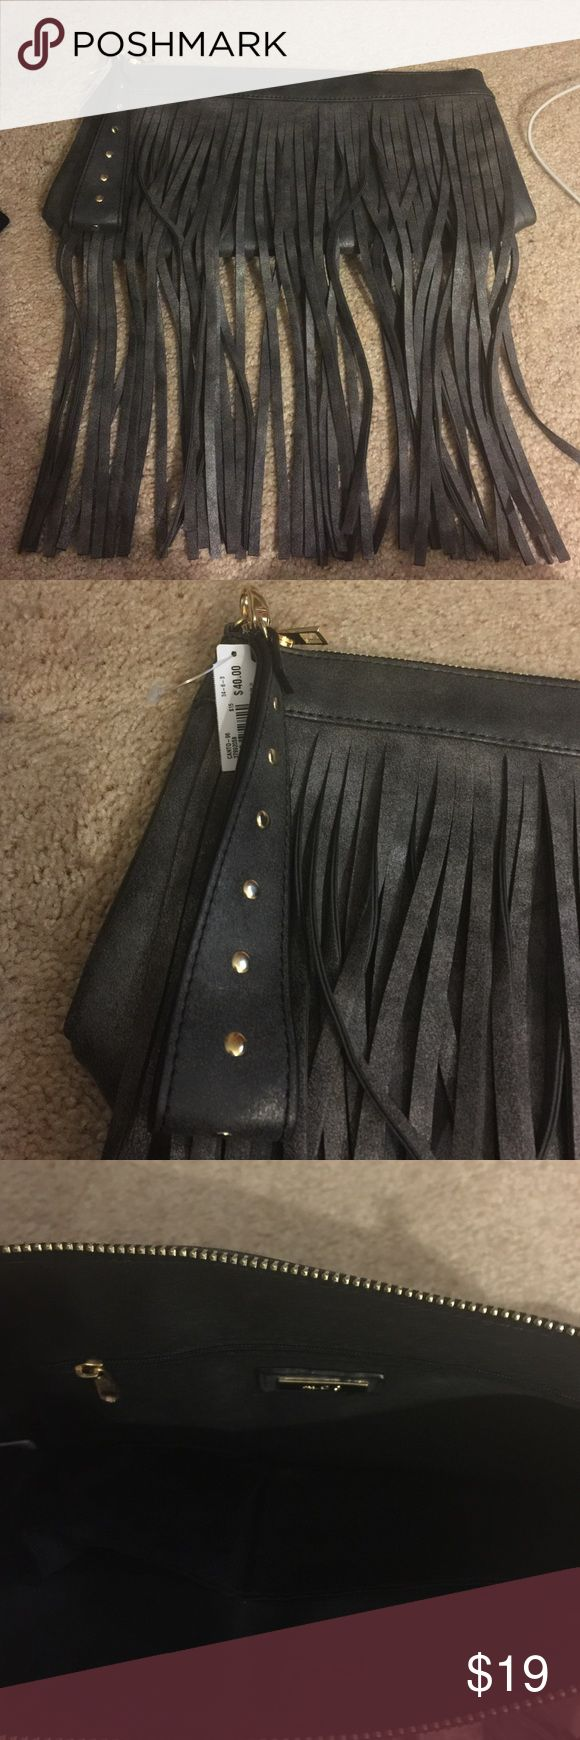 ALDO Charcoal Black Clutch w fringe Super cute Clutch from Aldo. Never used and still has tags on.... could be a Christmas present!  NOTE: Colorbis listed by Aldo as Black but it is more Charcoal-gunmetal w a tinge of black. NOT a true black. Aldo Bags Clutches & Wristlets